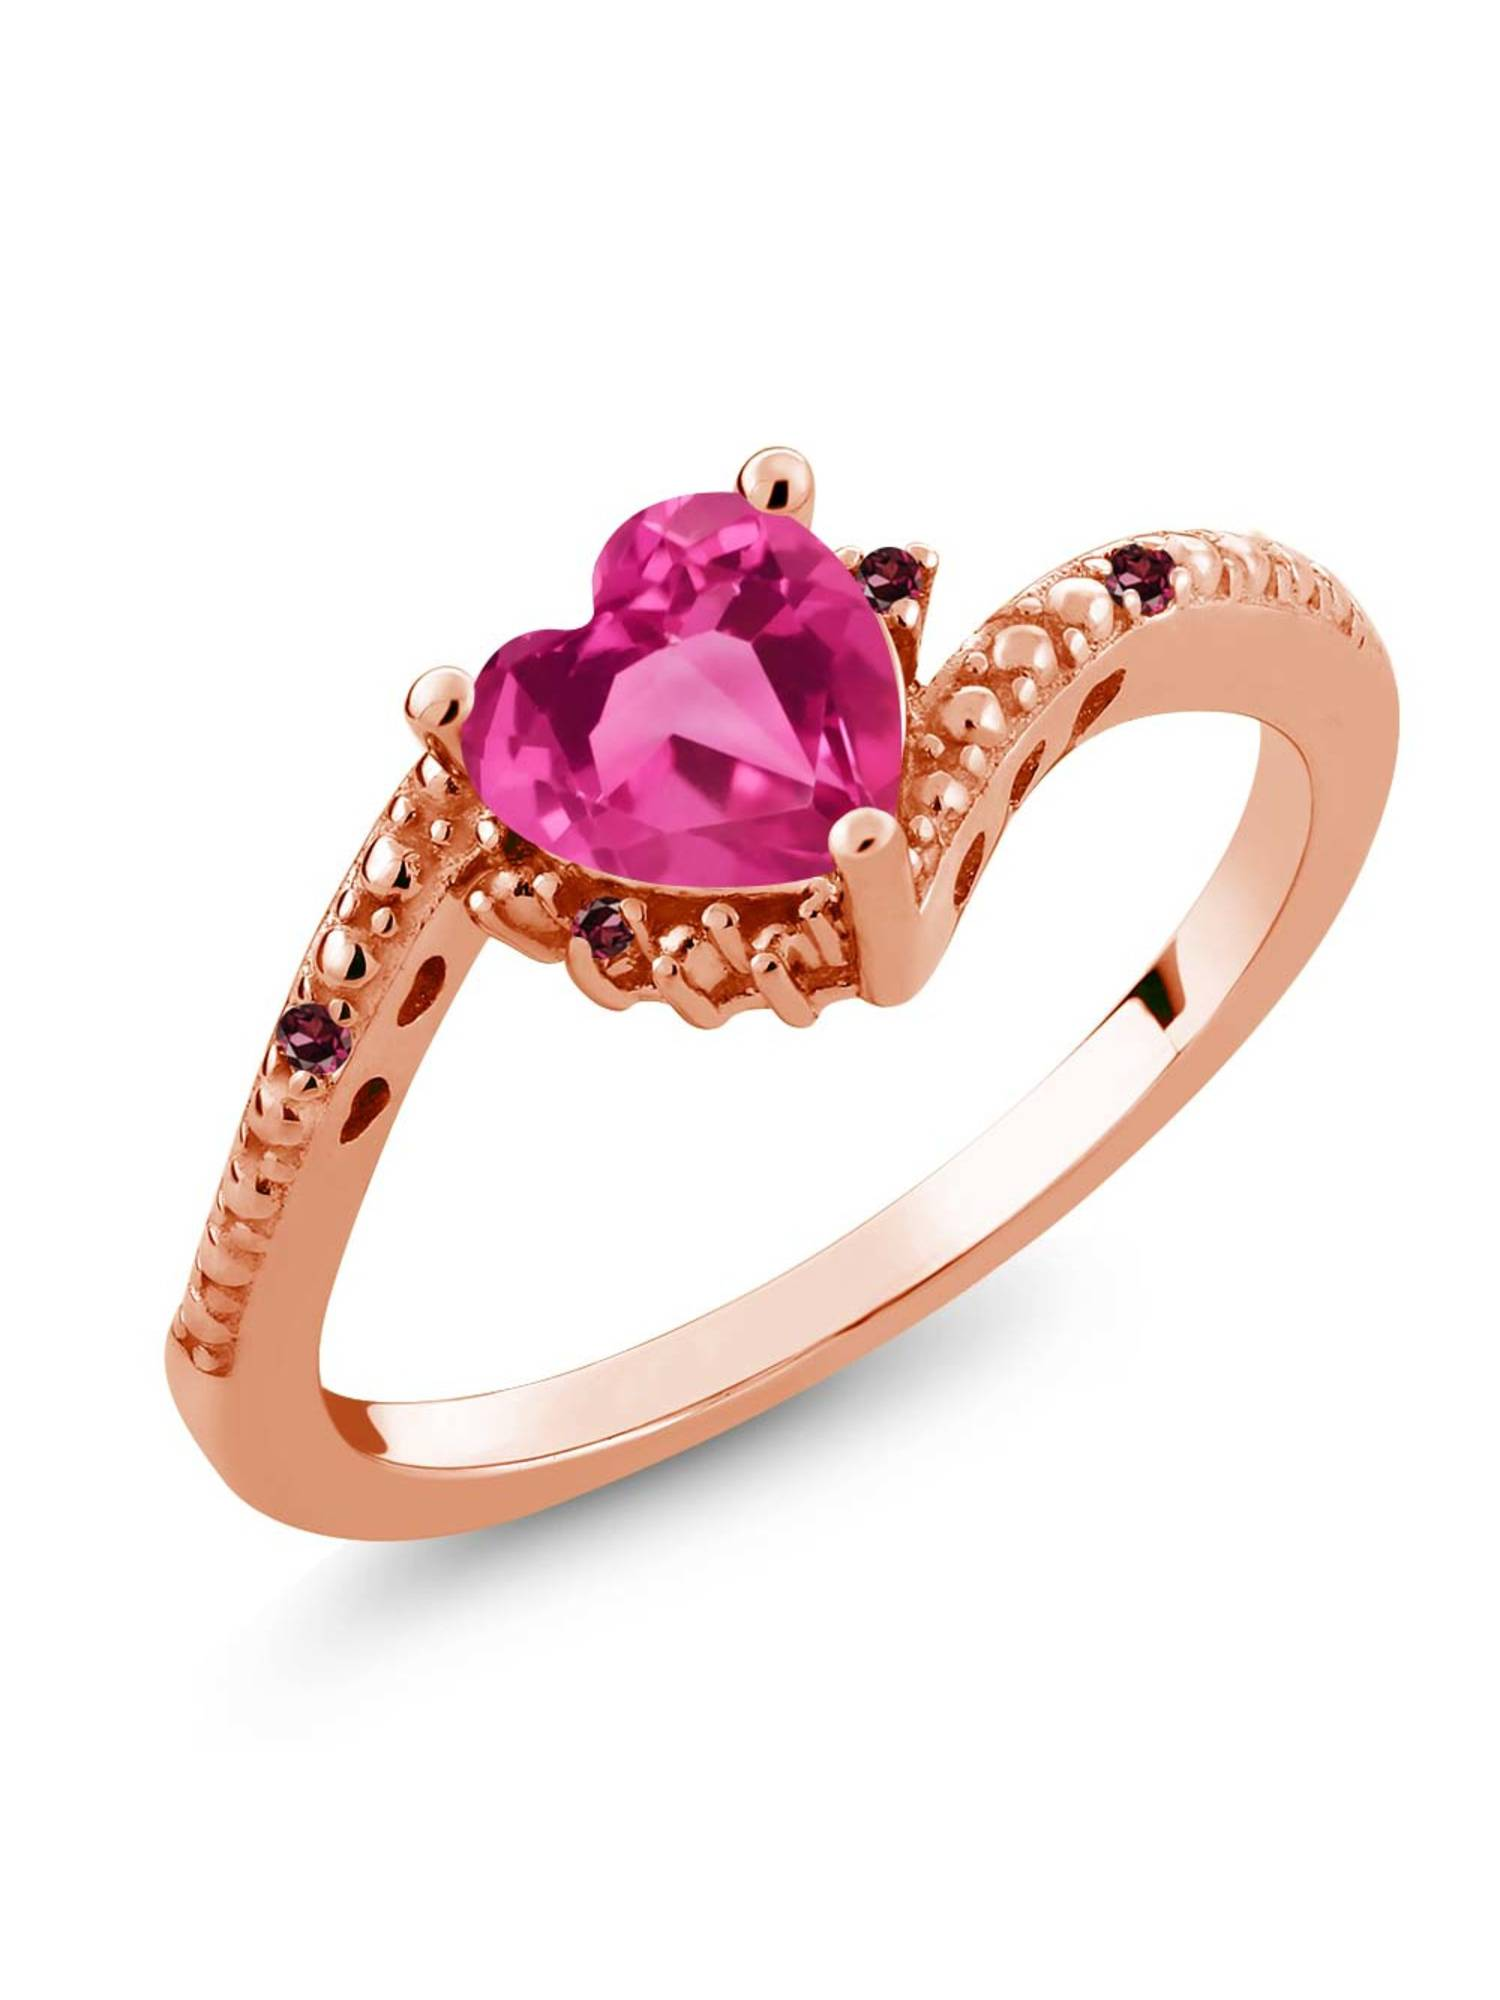 0.83 Ct Pink Created Sapphire Rhodolite Garnet 18K Rose Gold Plated Silver Ring by